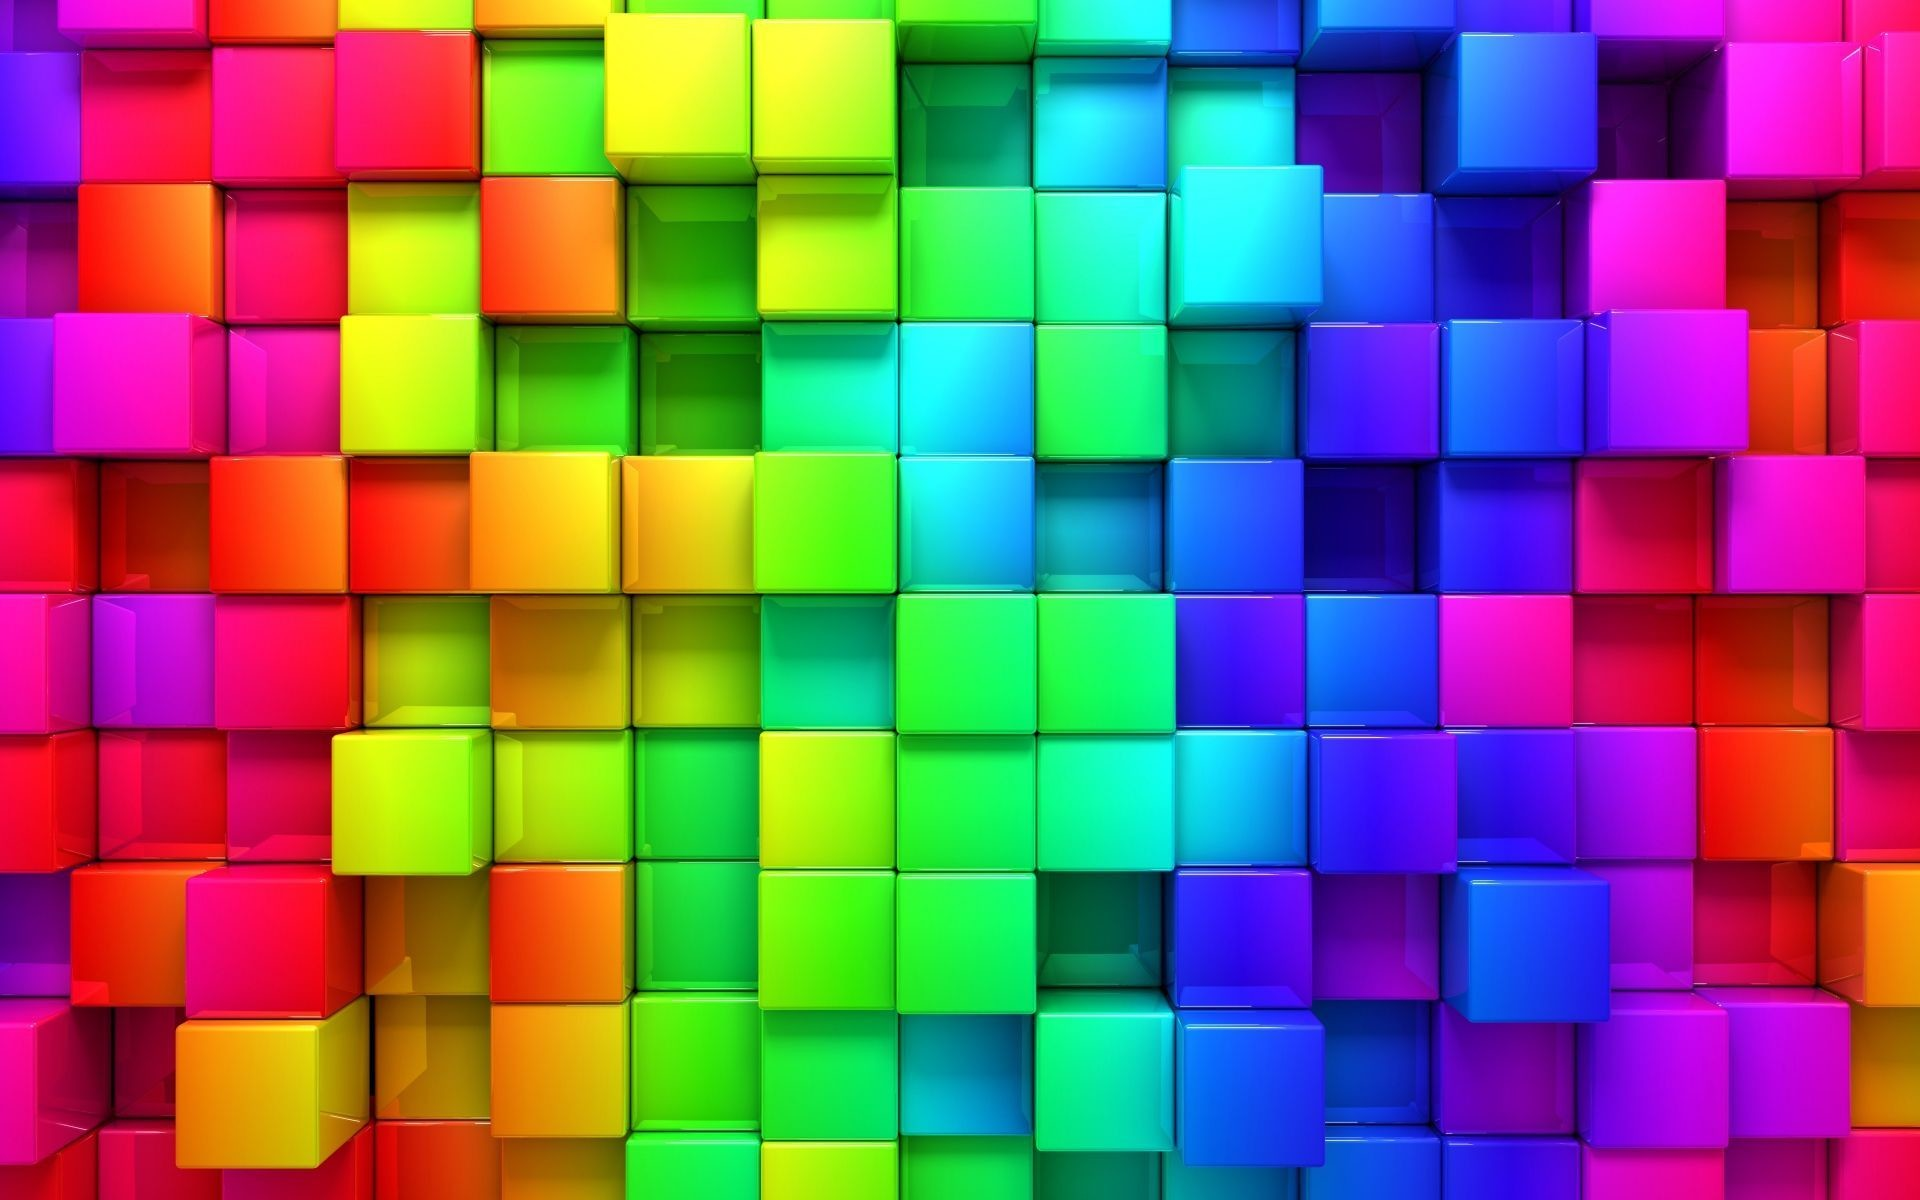 1920x1200 Colorful 3D Wallpapers Group (73+)